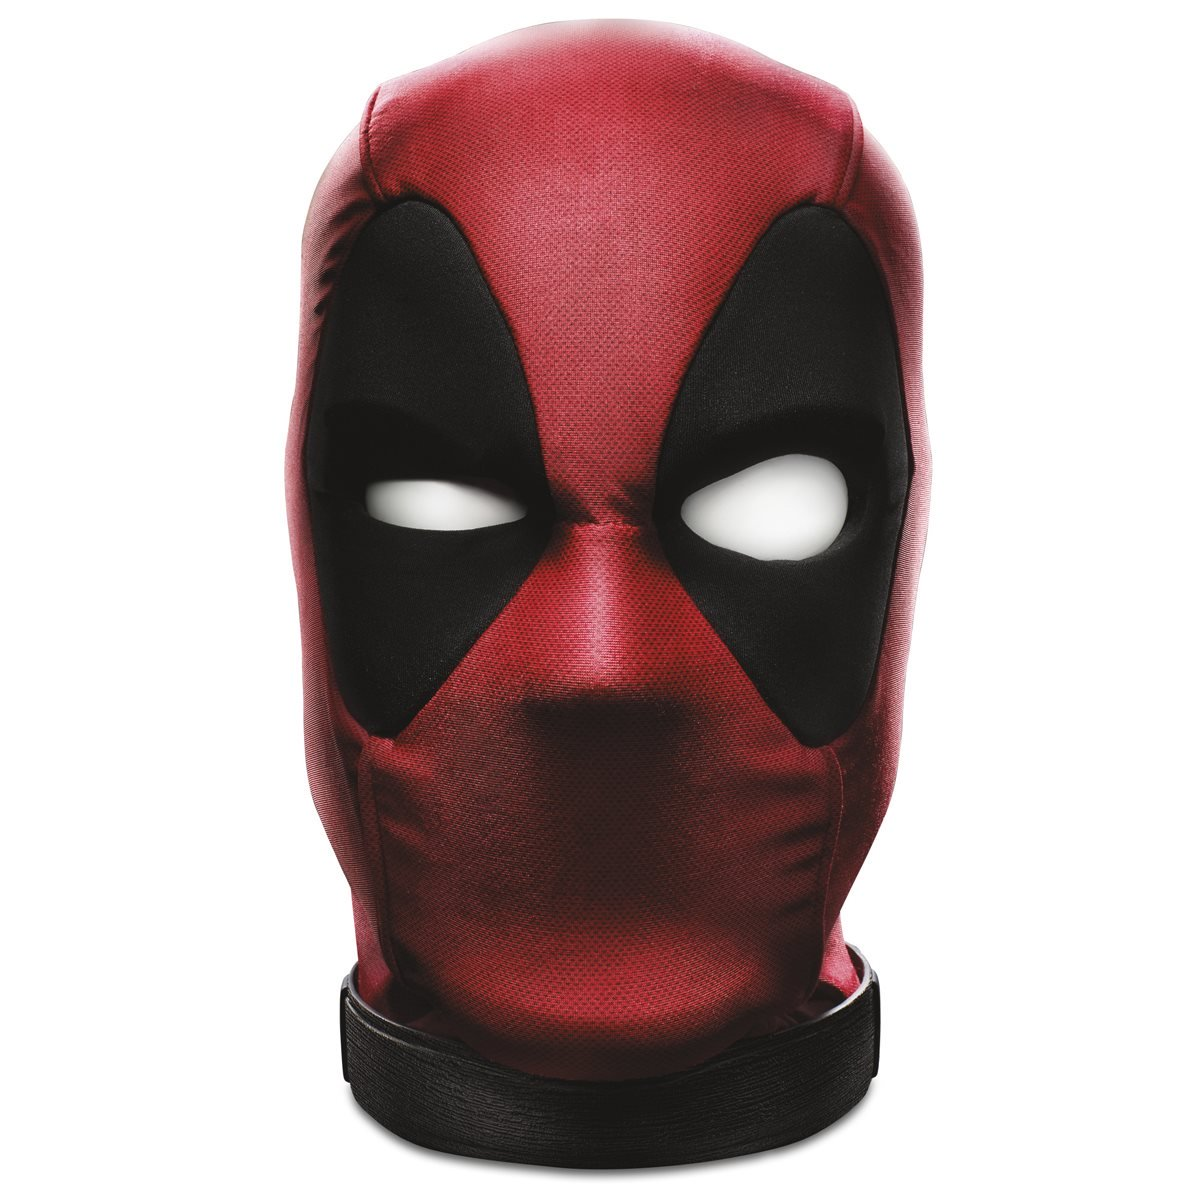 Marvel Legends Interactive Electronic Deadpool Head (October Preorder)